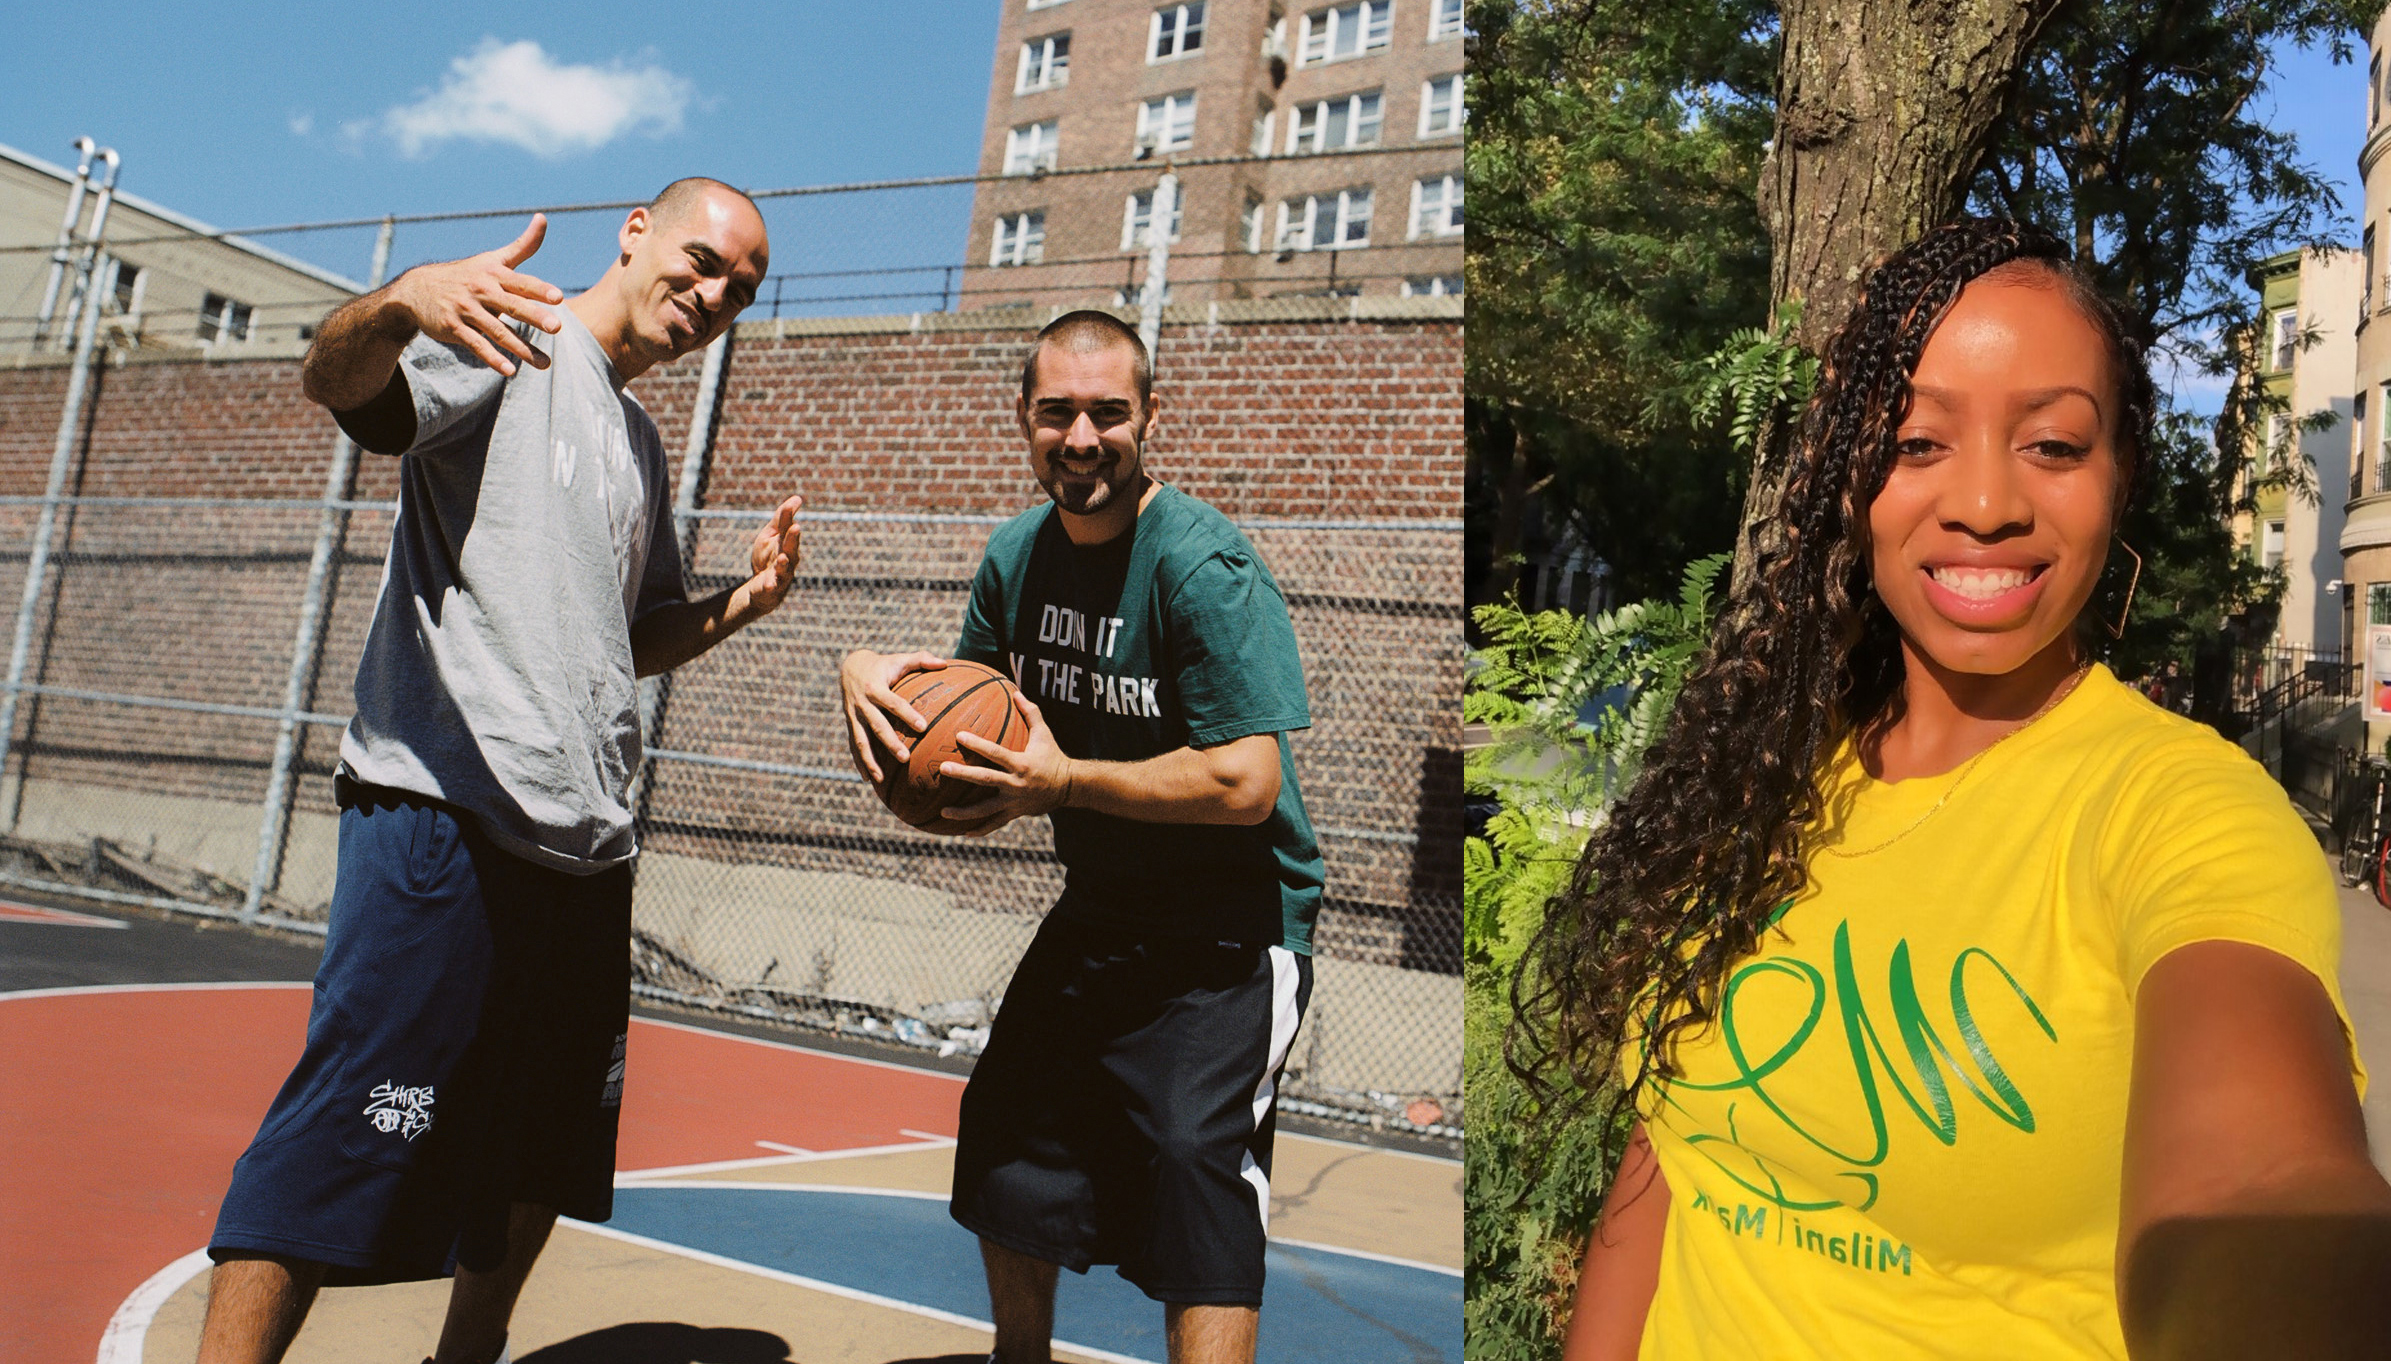 Left: Image of Bobbito Garcia & Kevin Couliau on a basketball court. Right: photograph of Milani Malik in a yellow shirt